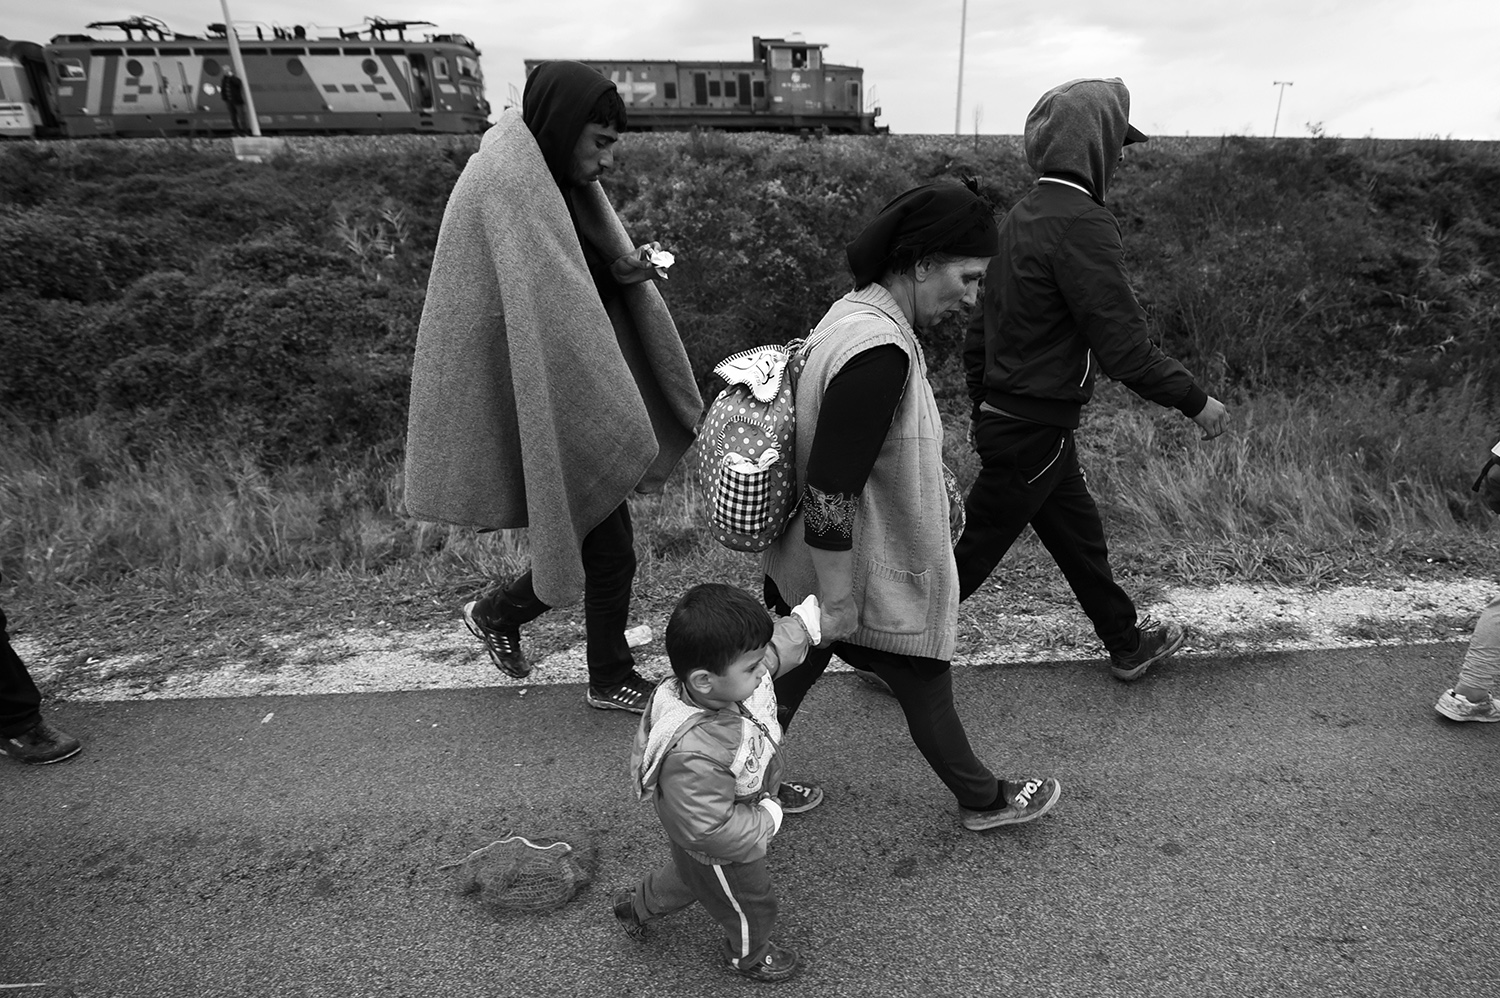 A woman walks with a child as she leave the railway station Botovo, near Koprivnica, Croatia. Several thousand refugees arrived by train and started to walk towards the Hungarian border, which will be closed after a few hours.